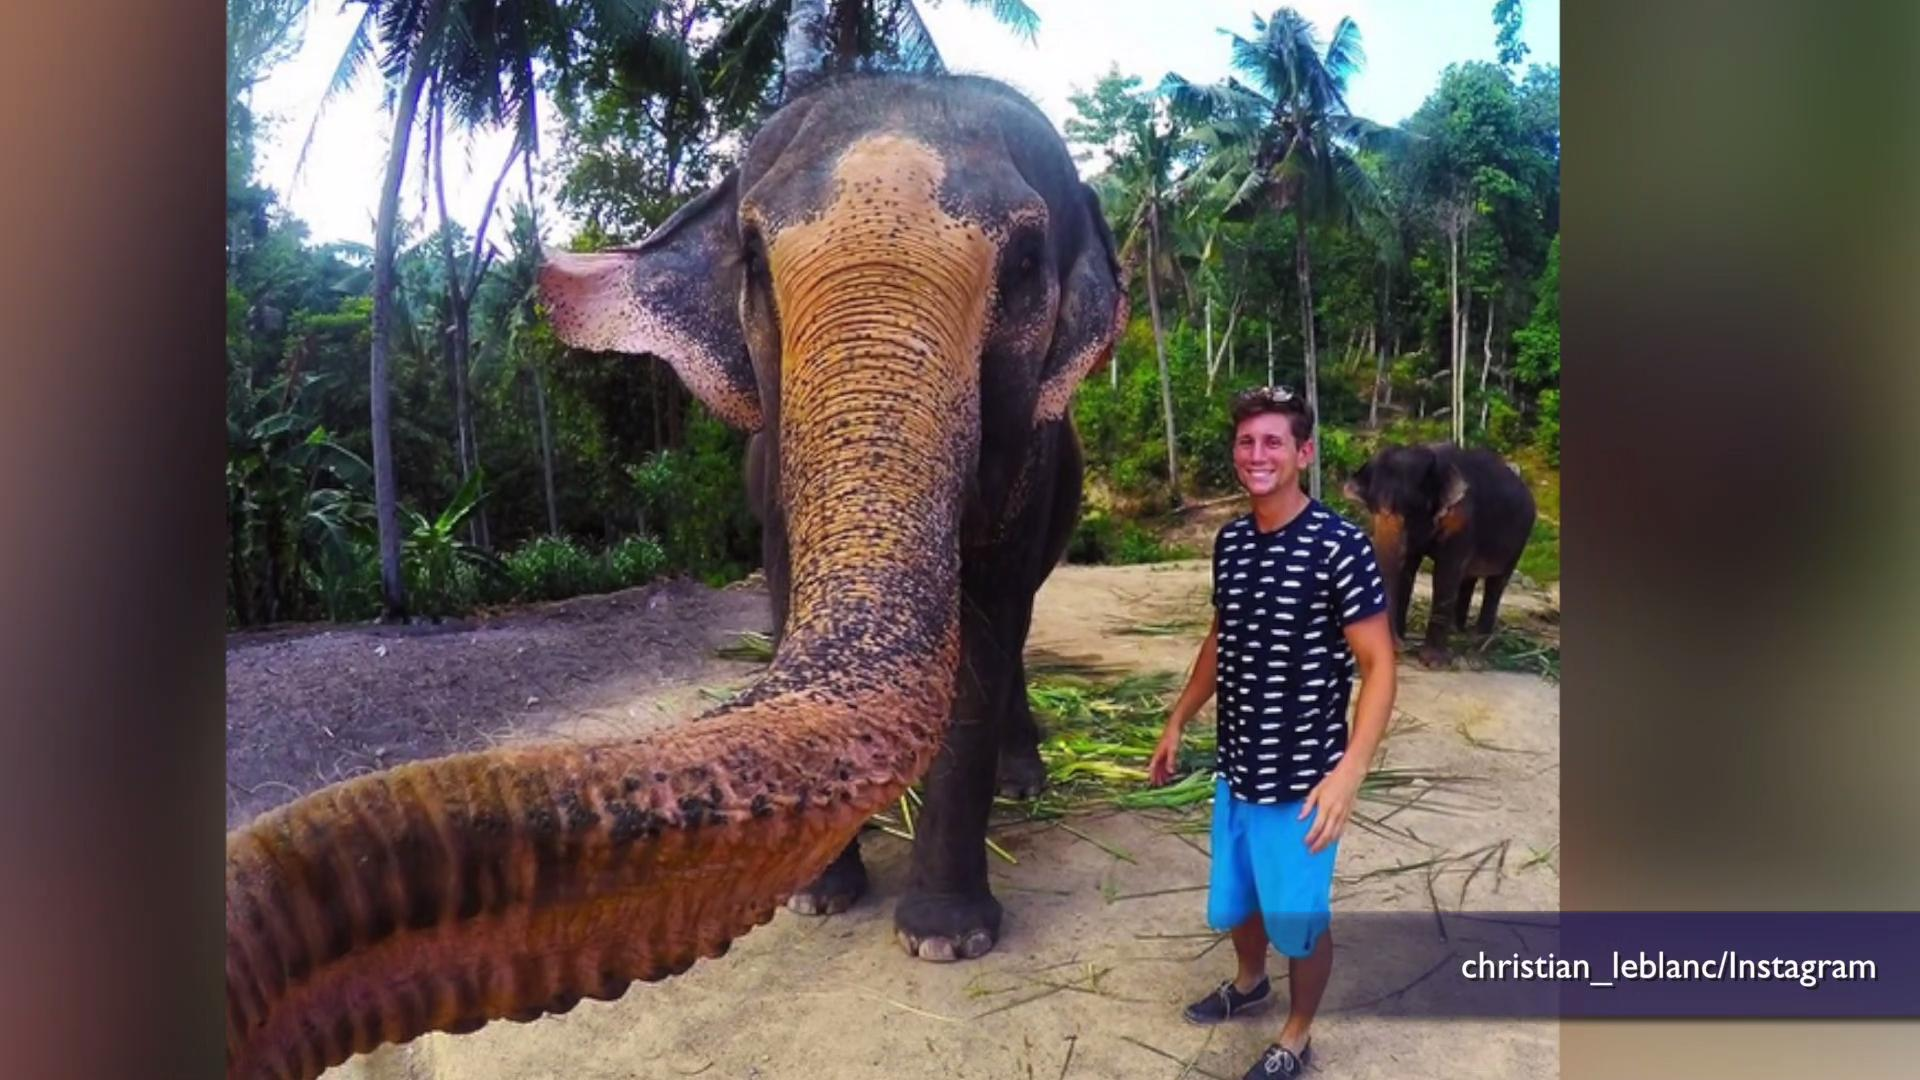 Elephant grabs tourist's GoPro and takes world's first 'elfie'